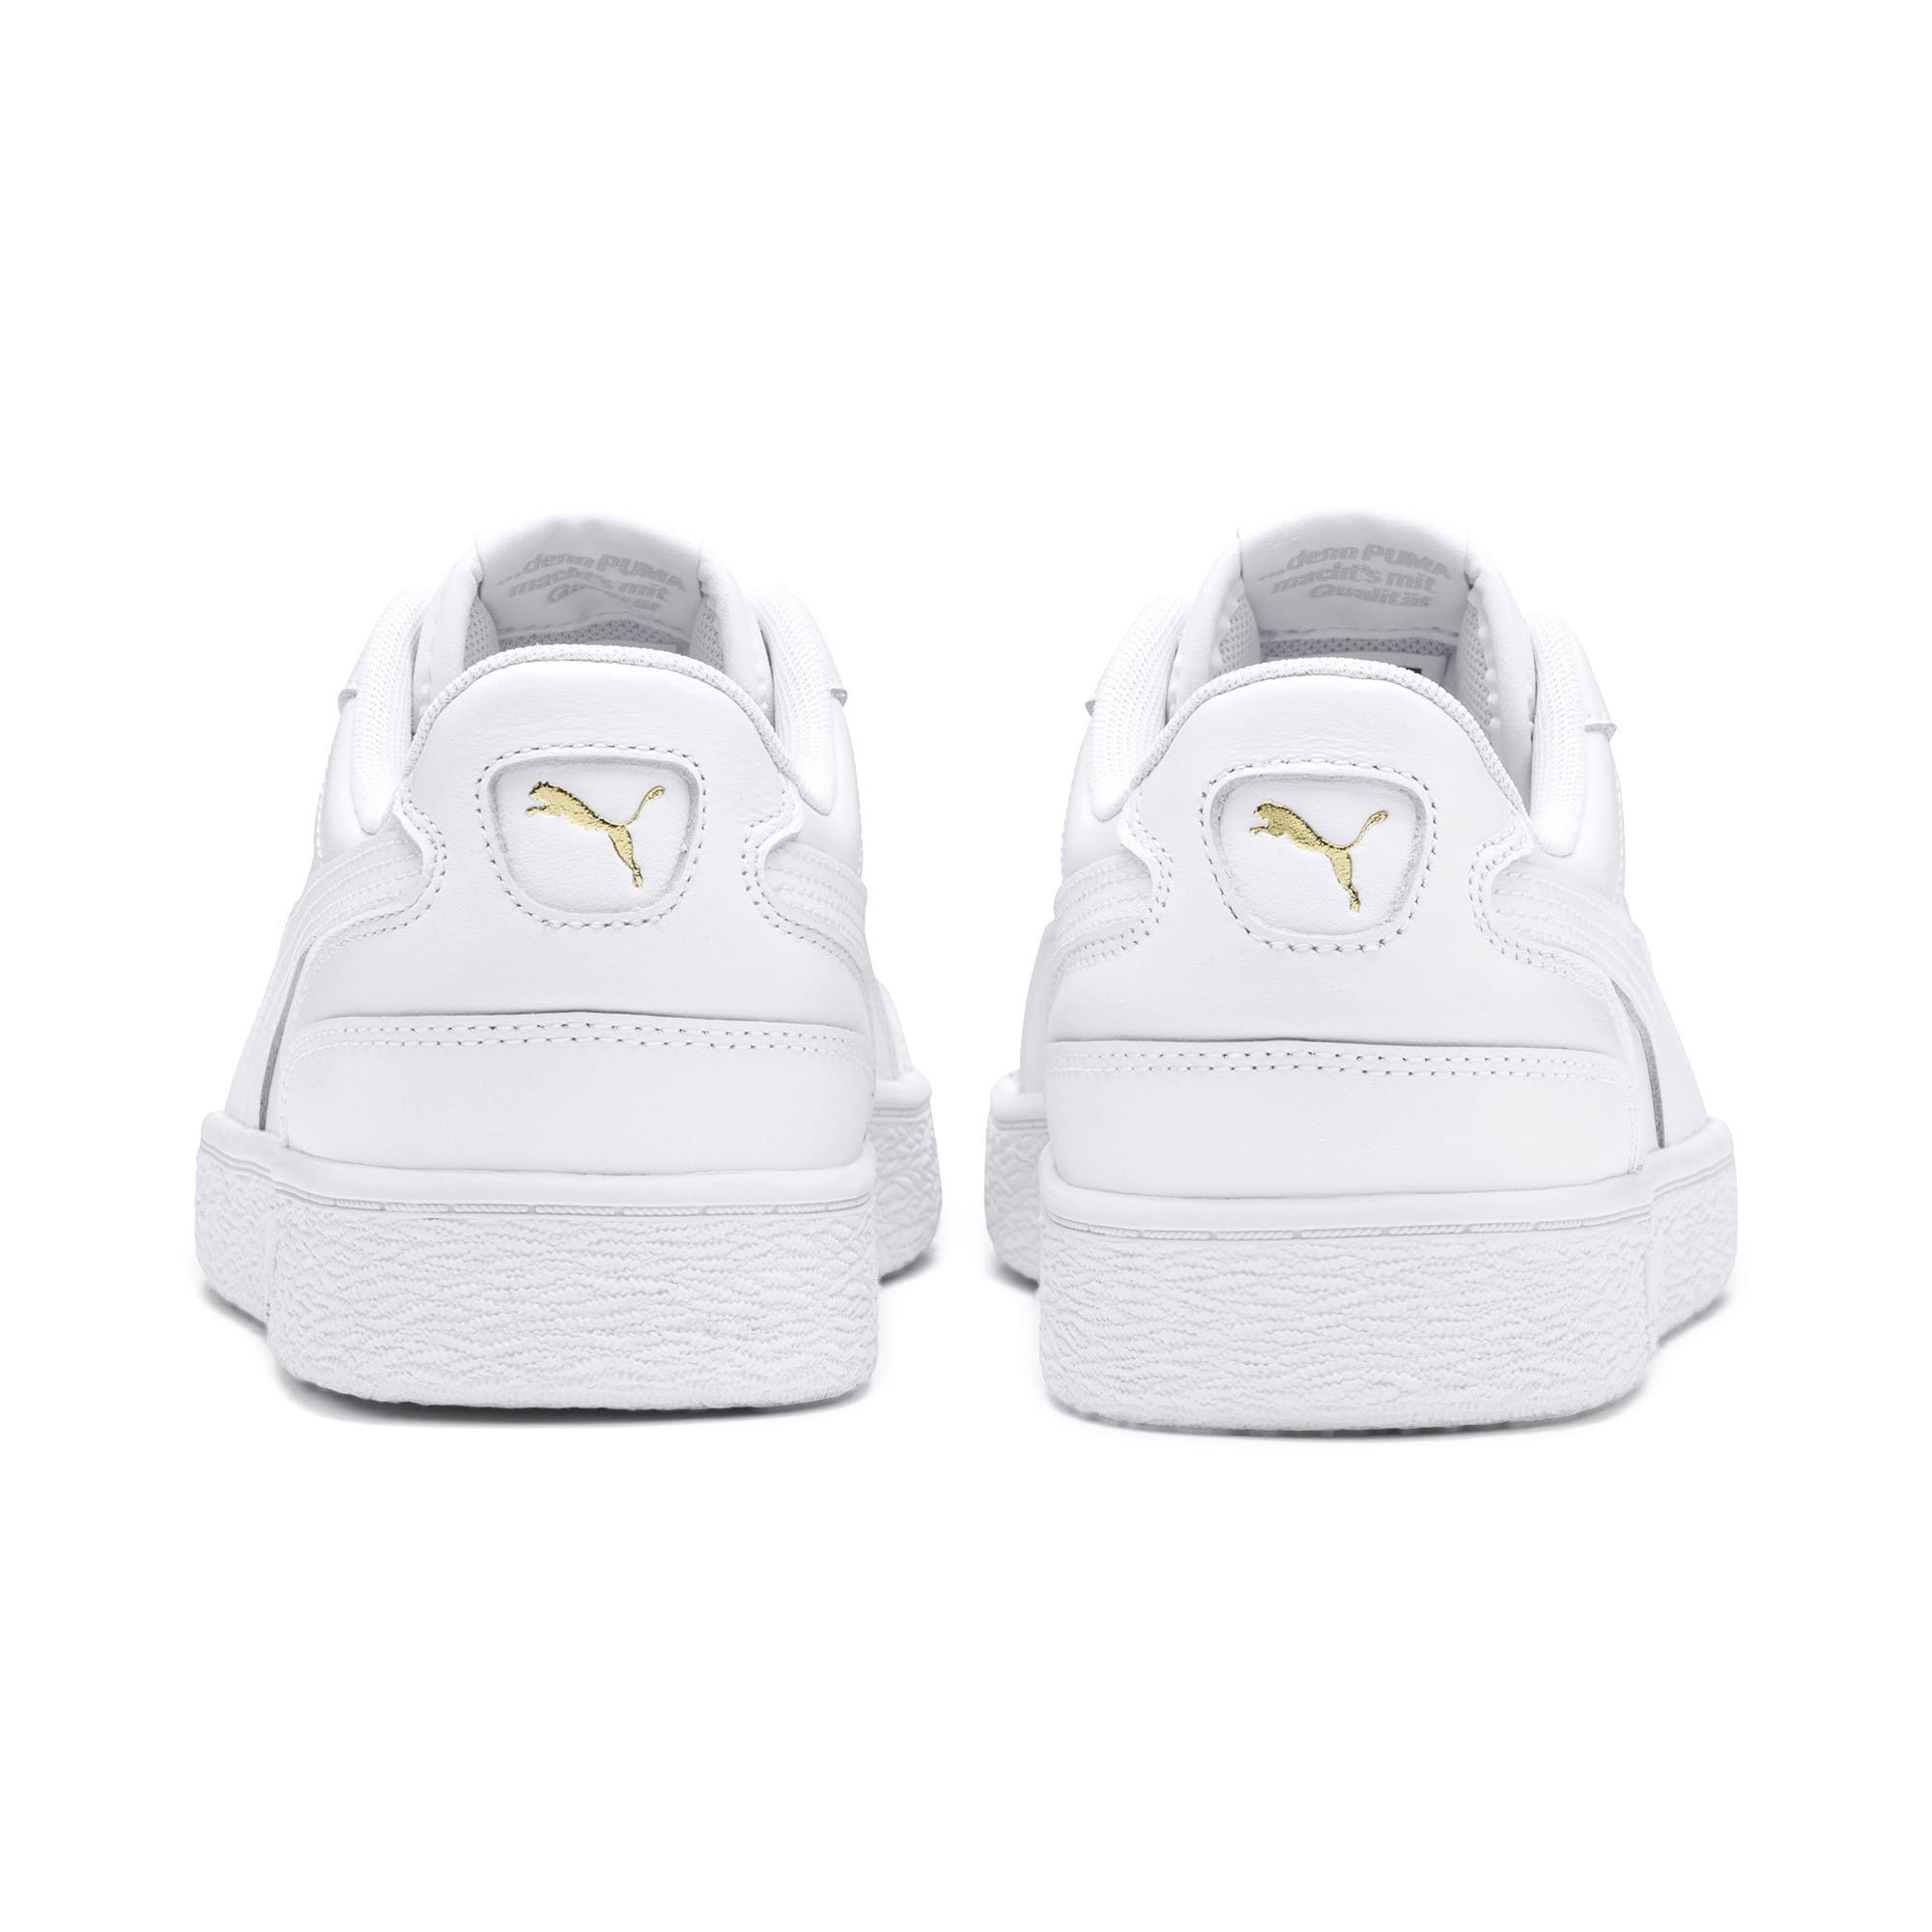 Thumbnail 4 of Ralph Sampson Lo Sneakers, Puma Wht-Puma Wht-Puma Wht, medium